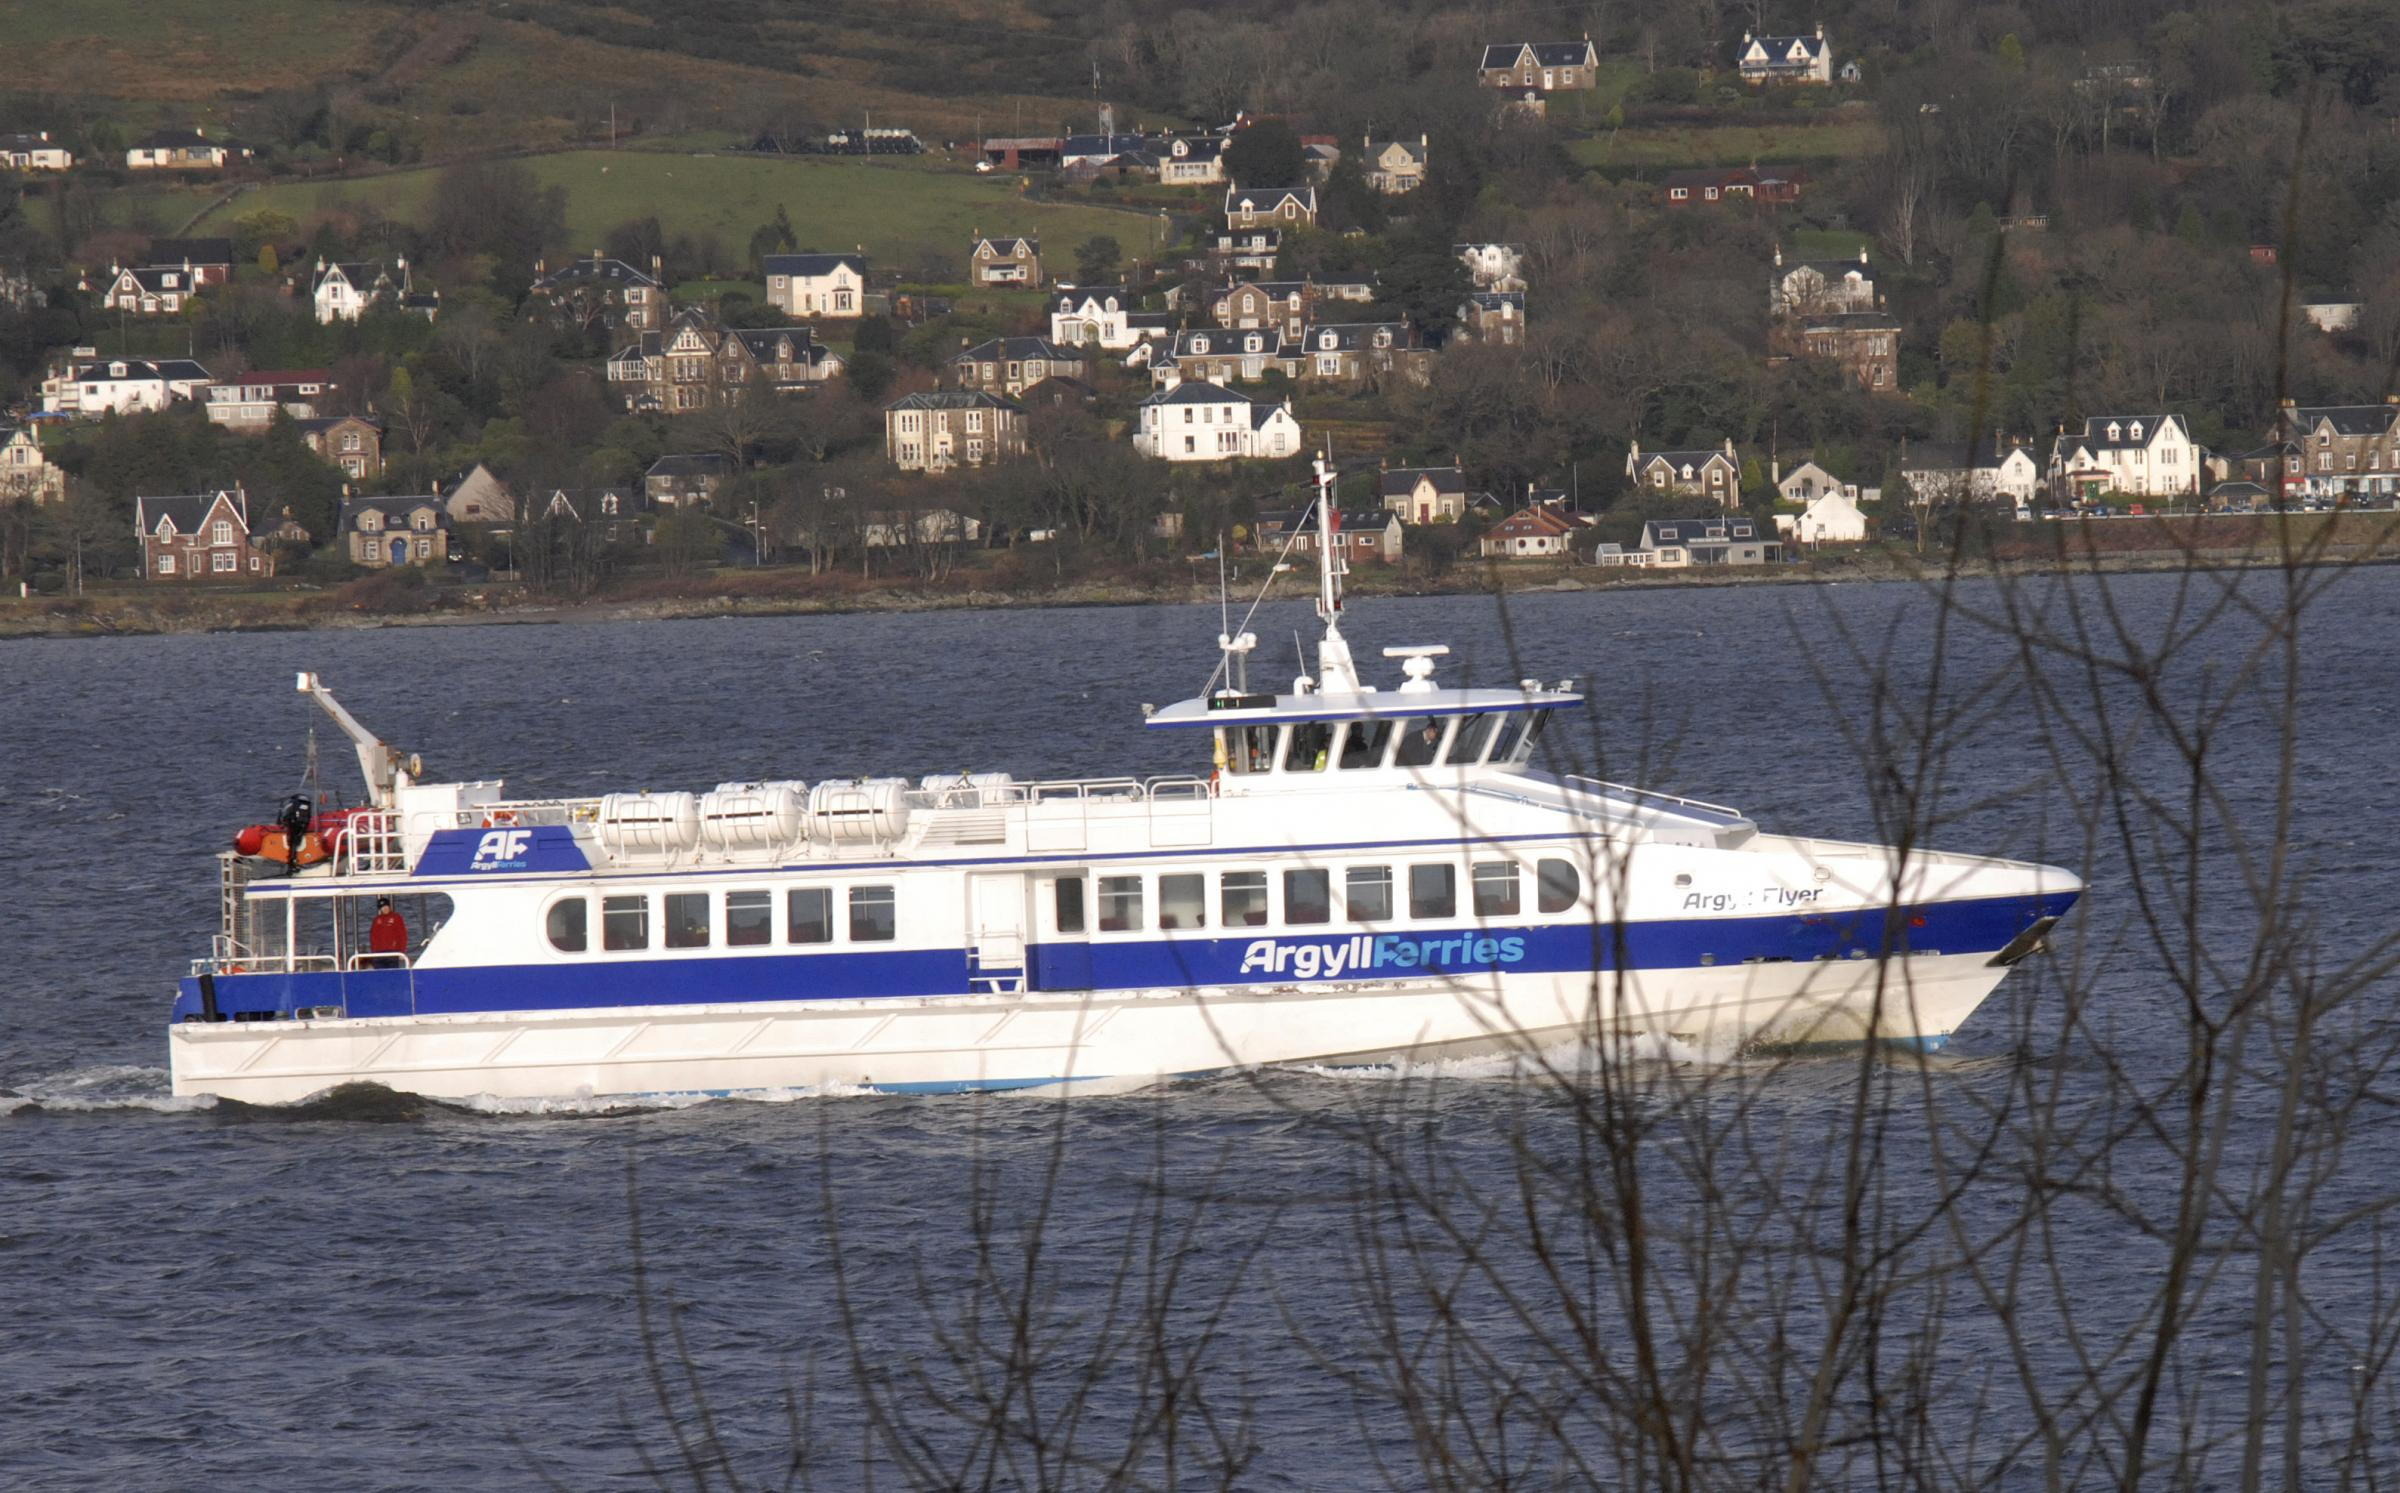 'Lifeline Gourock ferry service' contract still in limbo